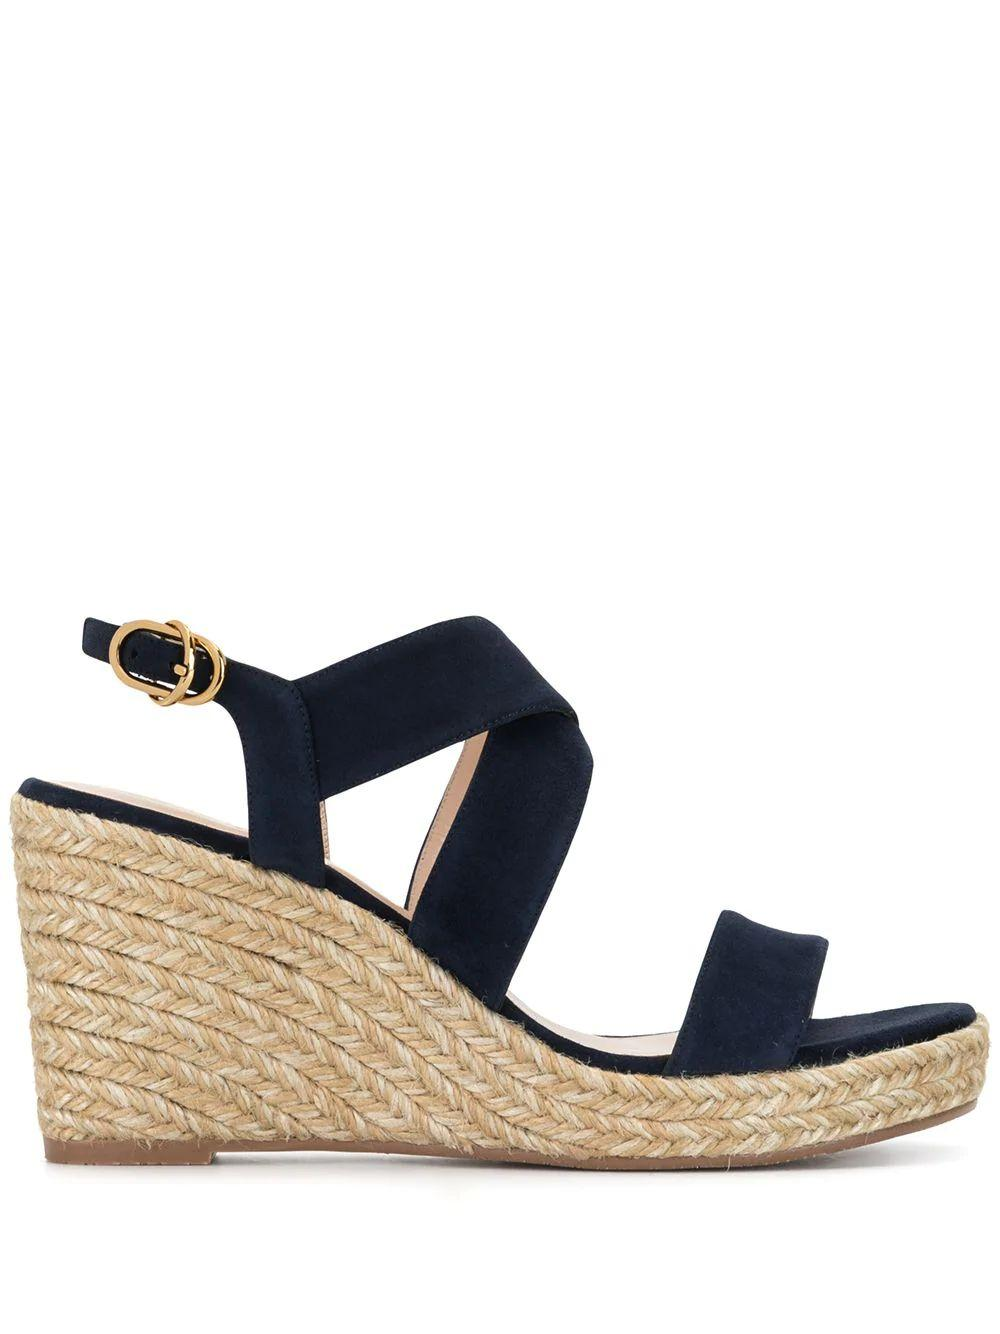 Ellette Wedge Sandal